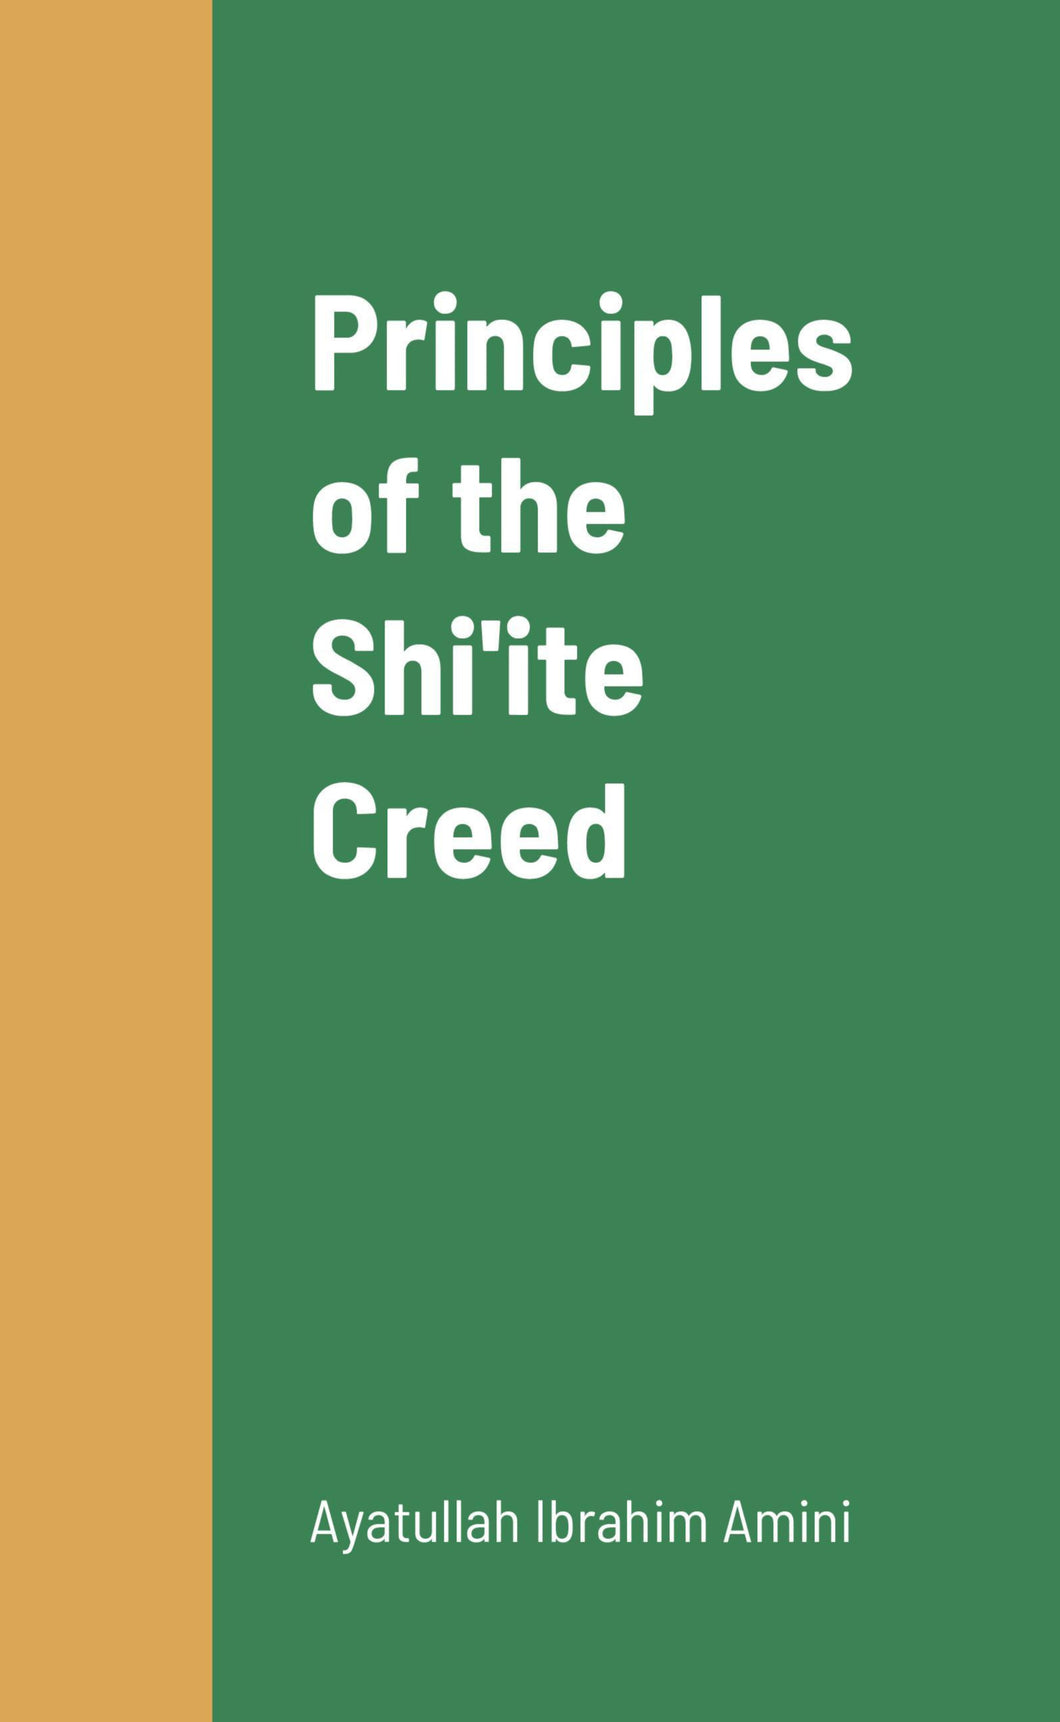 Principles of the Shi'ite Creed